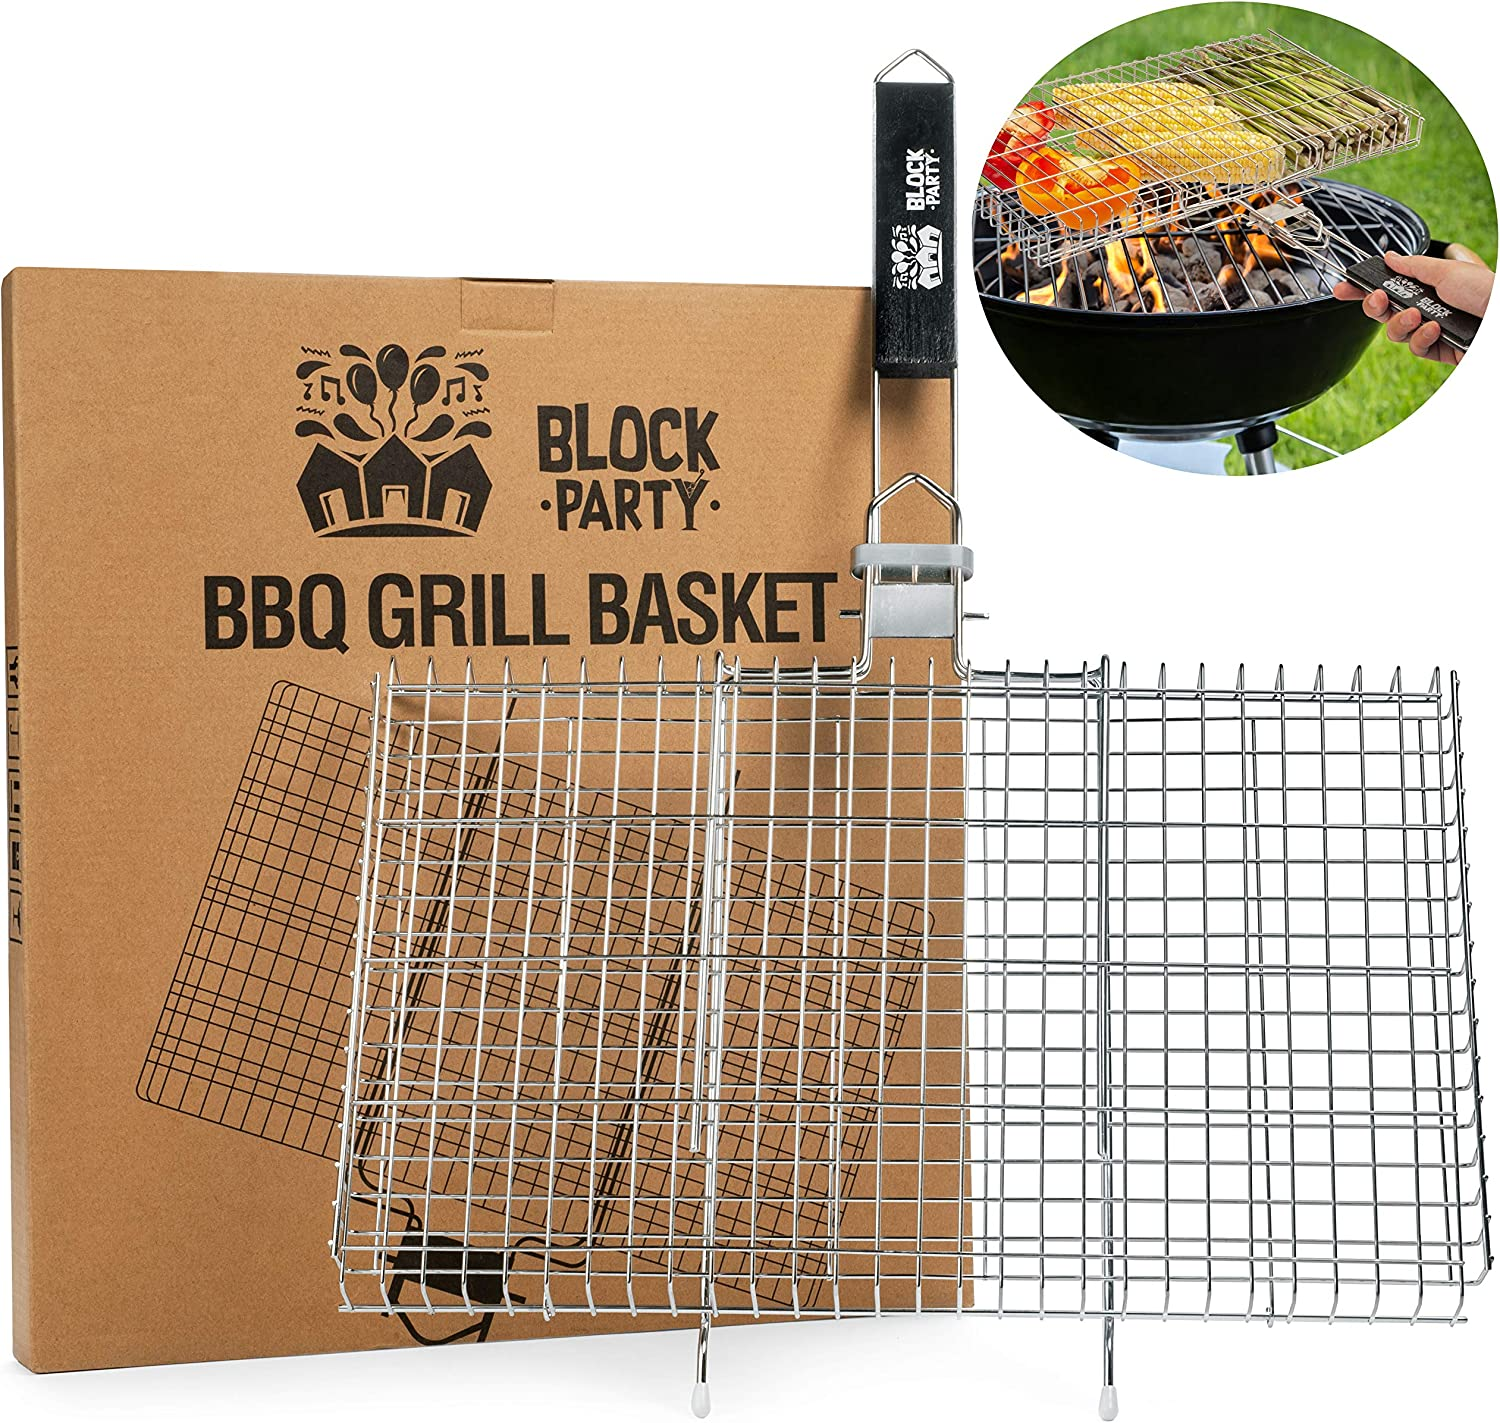 New Year Liquidation Sale on Grill Baskets For Chicken, Shrimp, Fish, Vegetables, etc. BBQ Accessories For Outdoor Cooking. Heavy Duty 304 Stainless Steel. Also Perfect for Campfire and Smoker